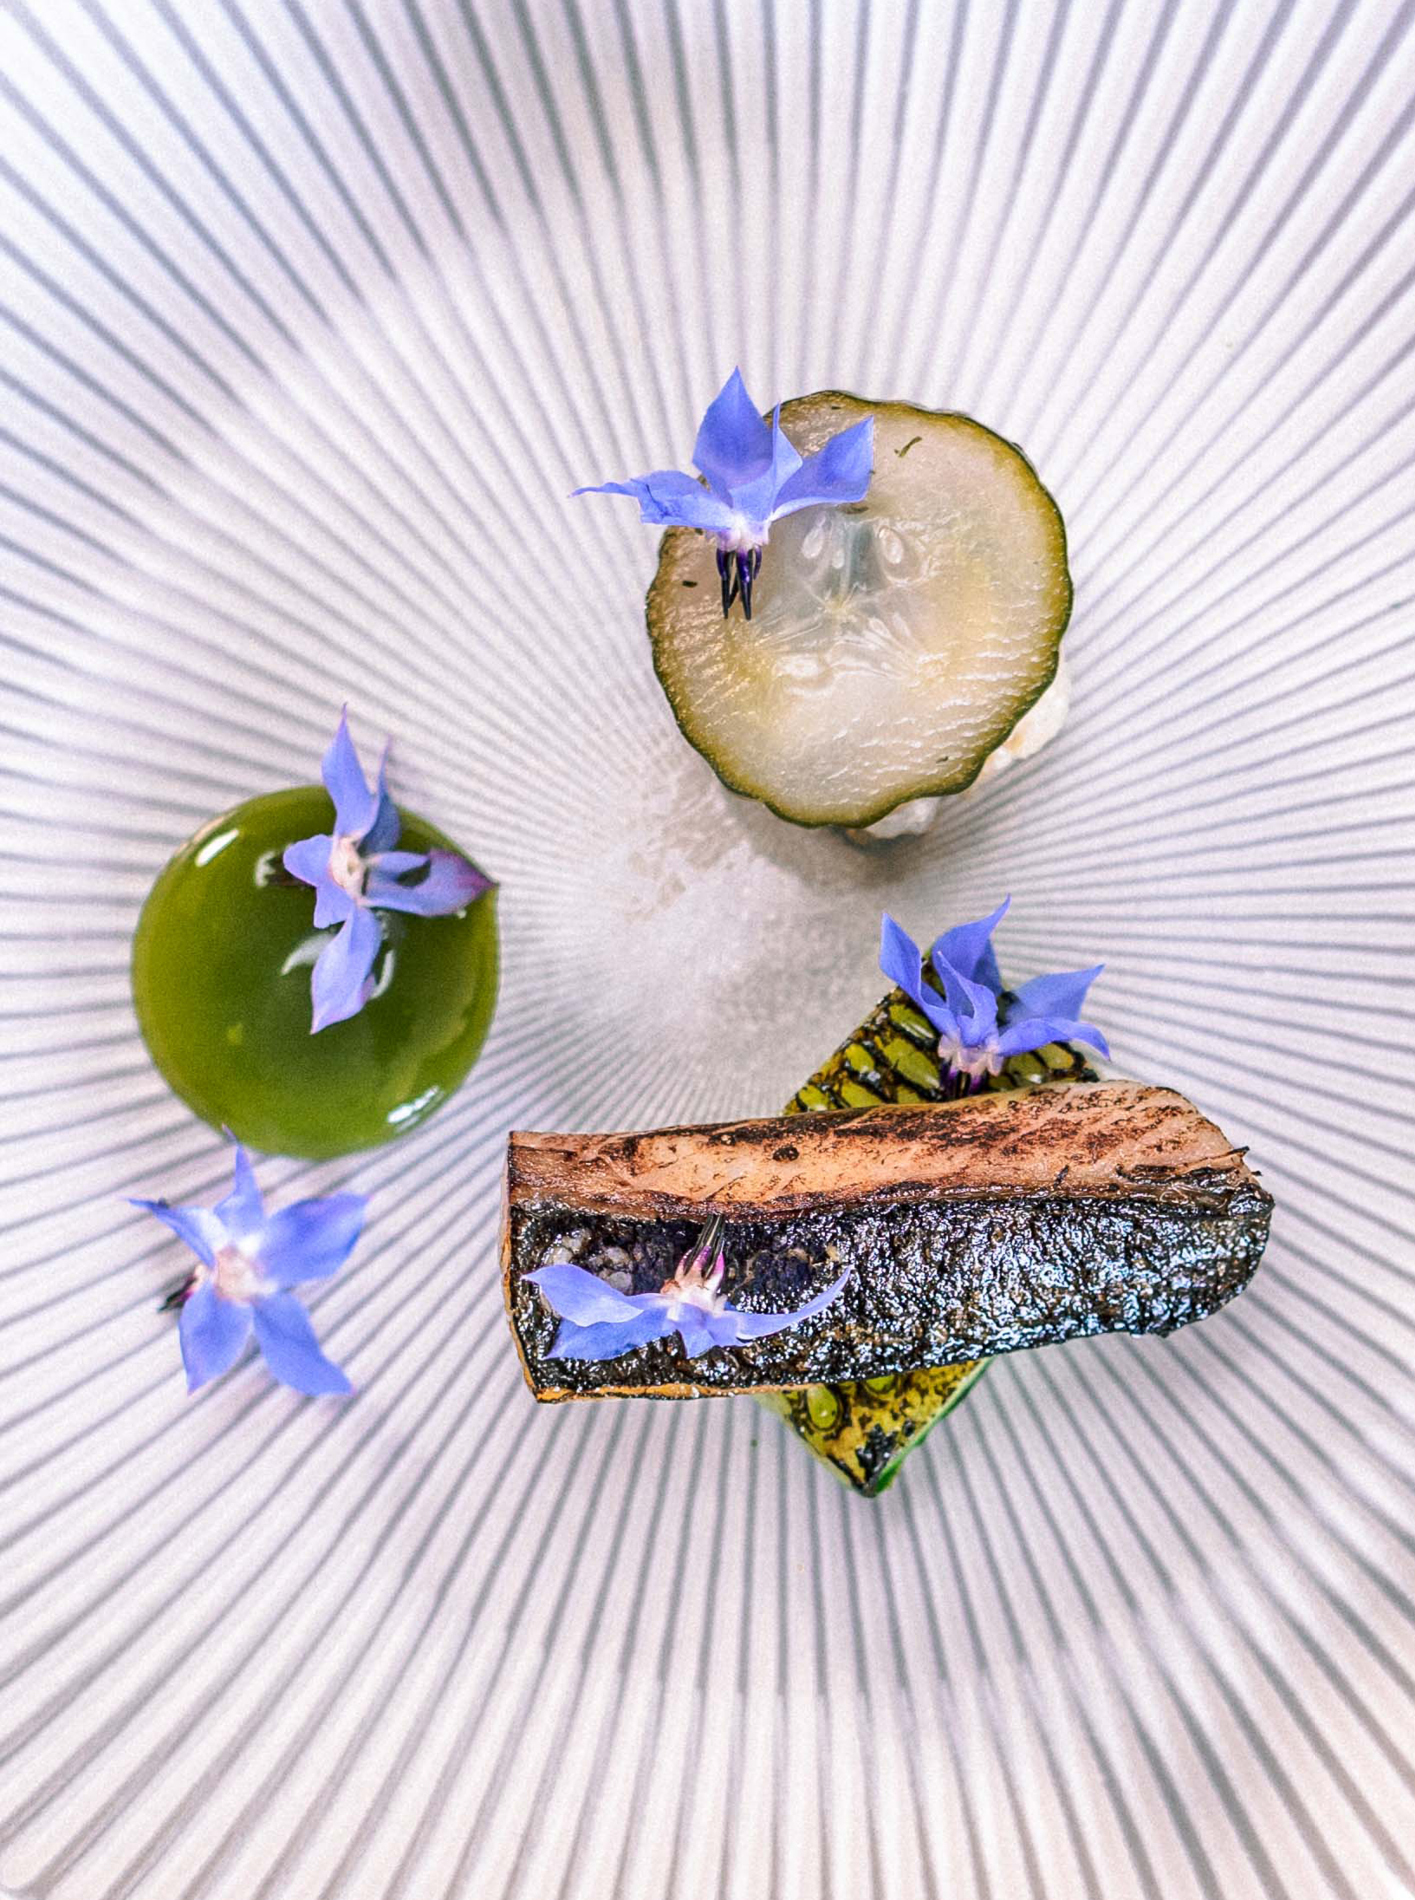 Mackerel with cucumber and borage at The Small Holding, image courtesy of Food Story Media